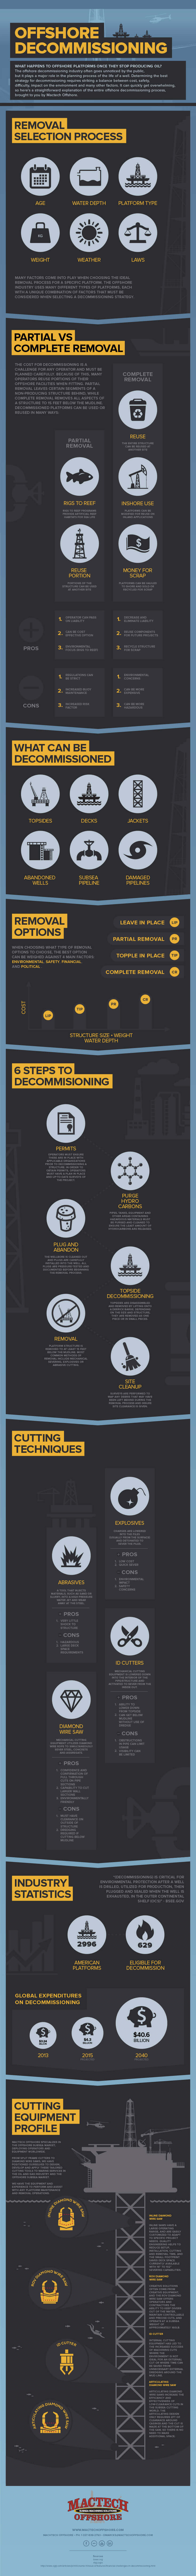 Offshore-Decommissioning-infographic